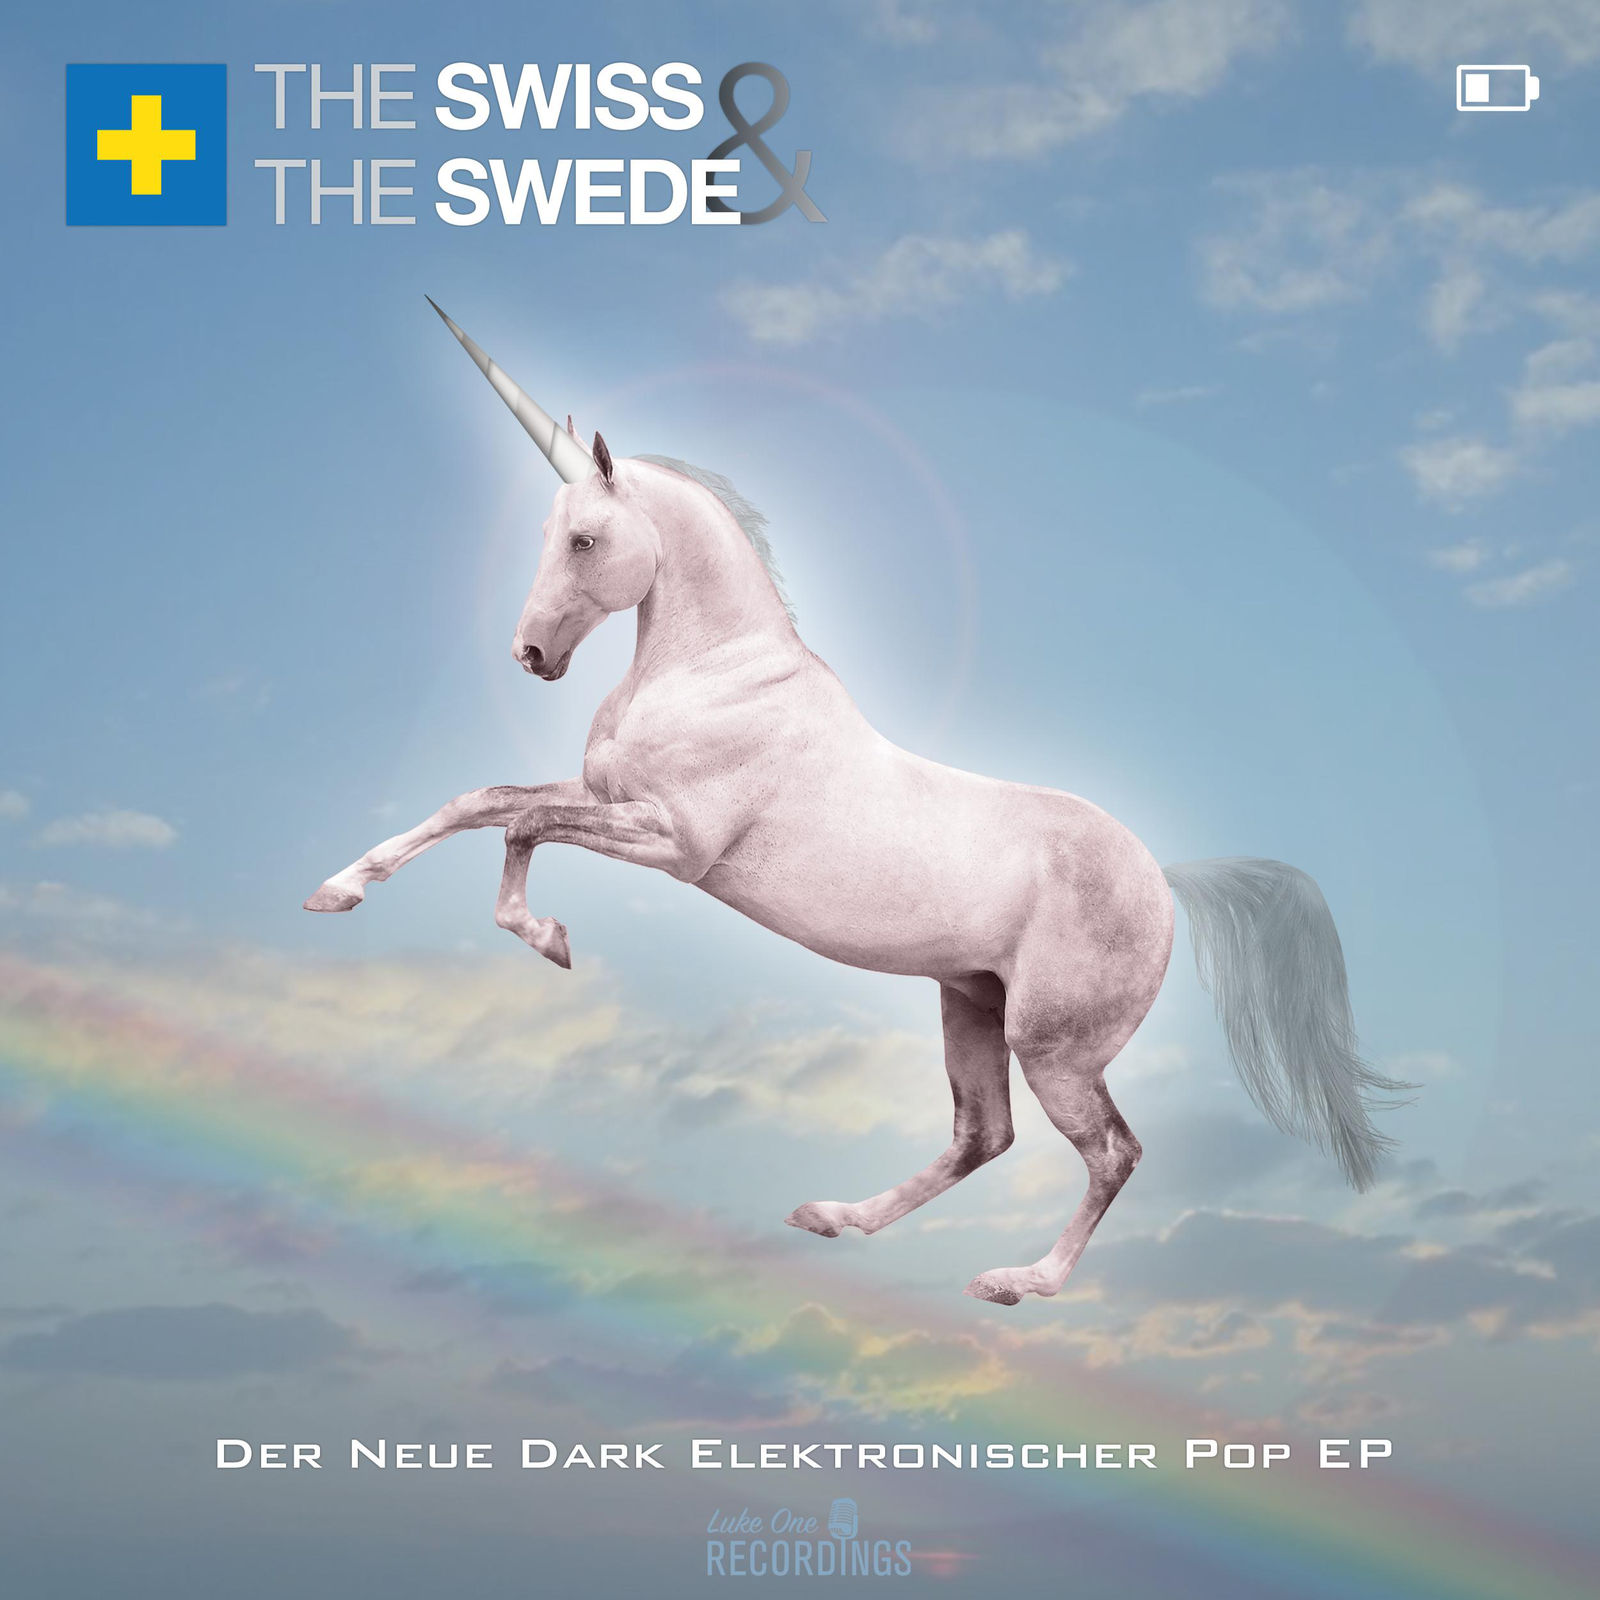 The Swiss & the Swede (Der Neue Dark Elektronischer Pop EP)